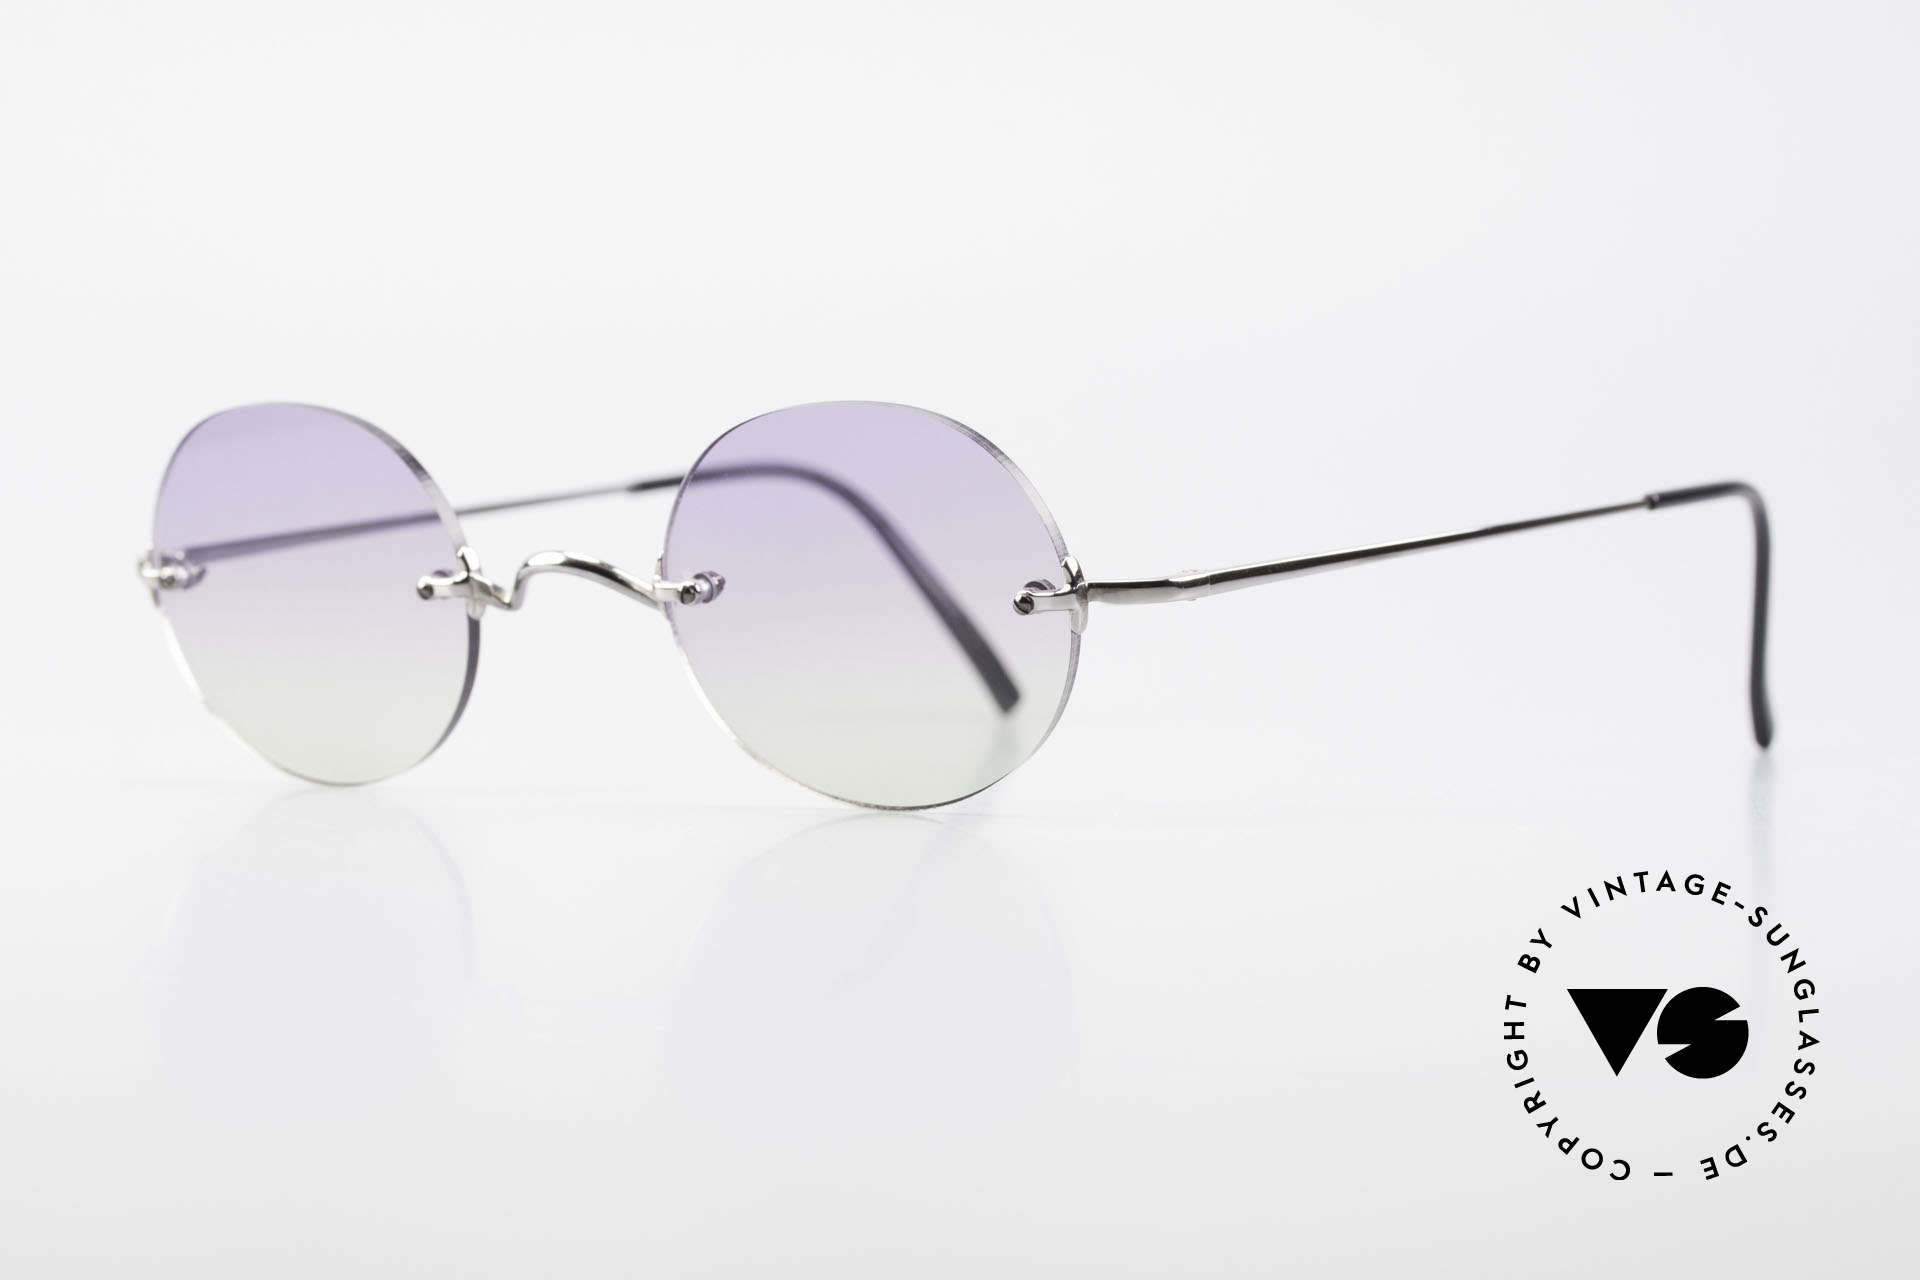 Freudenhaus Flemming Round Rimless Sunglasses, silver/chrome metal components are made in Japan, Made for Men and Women